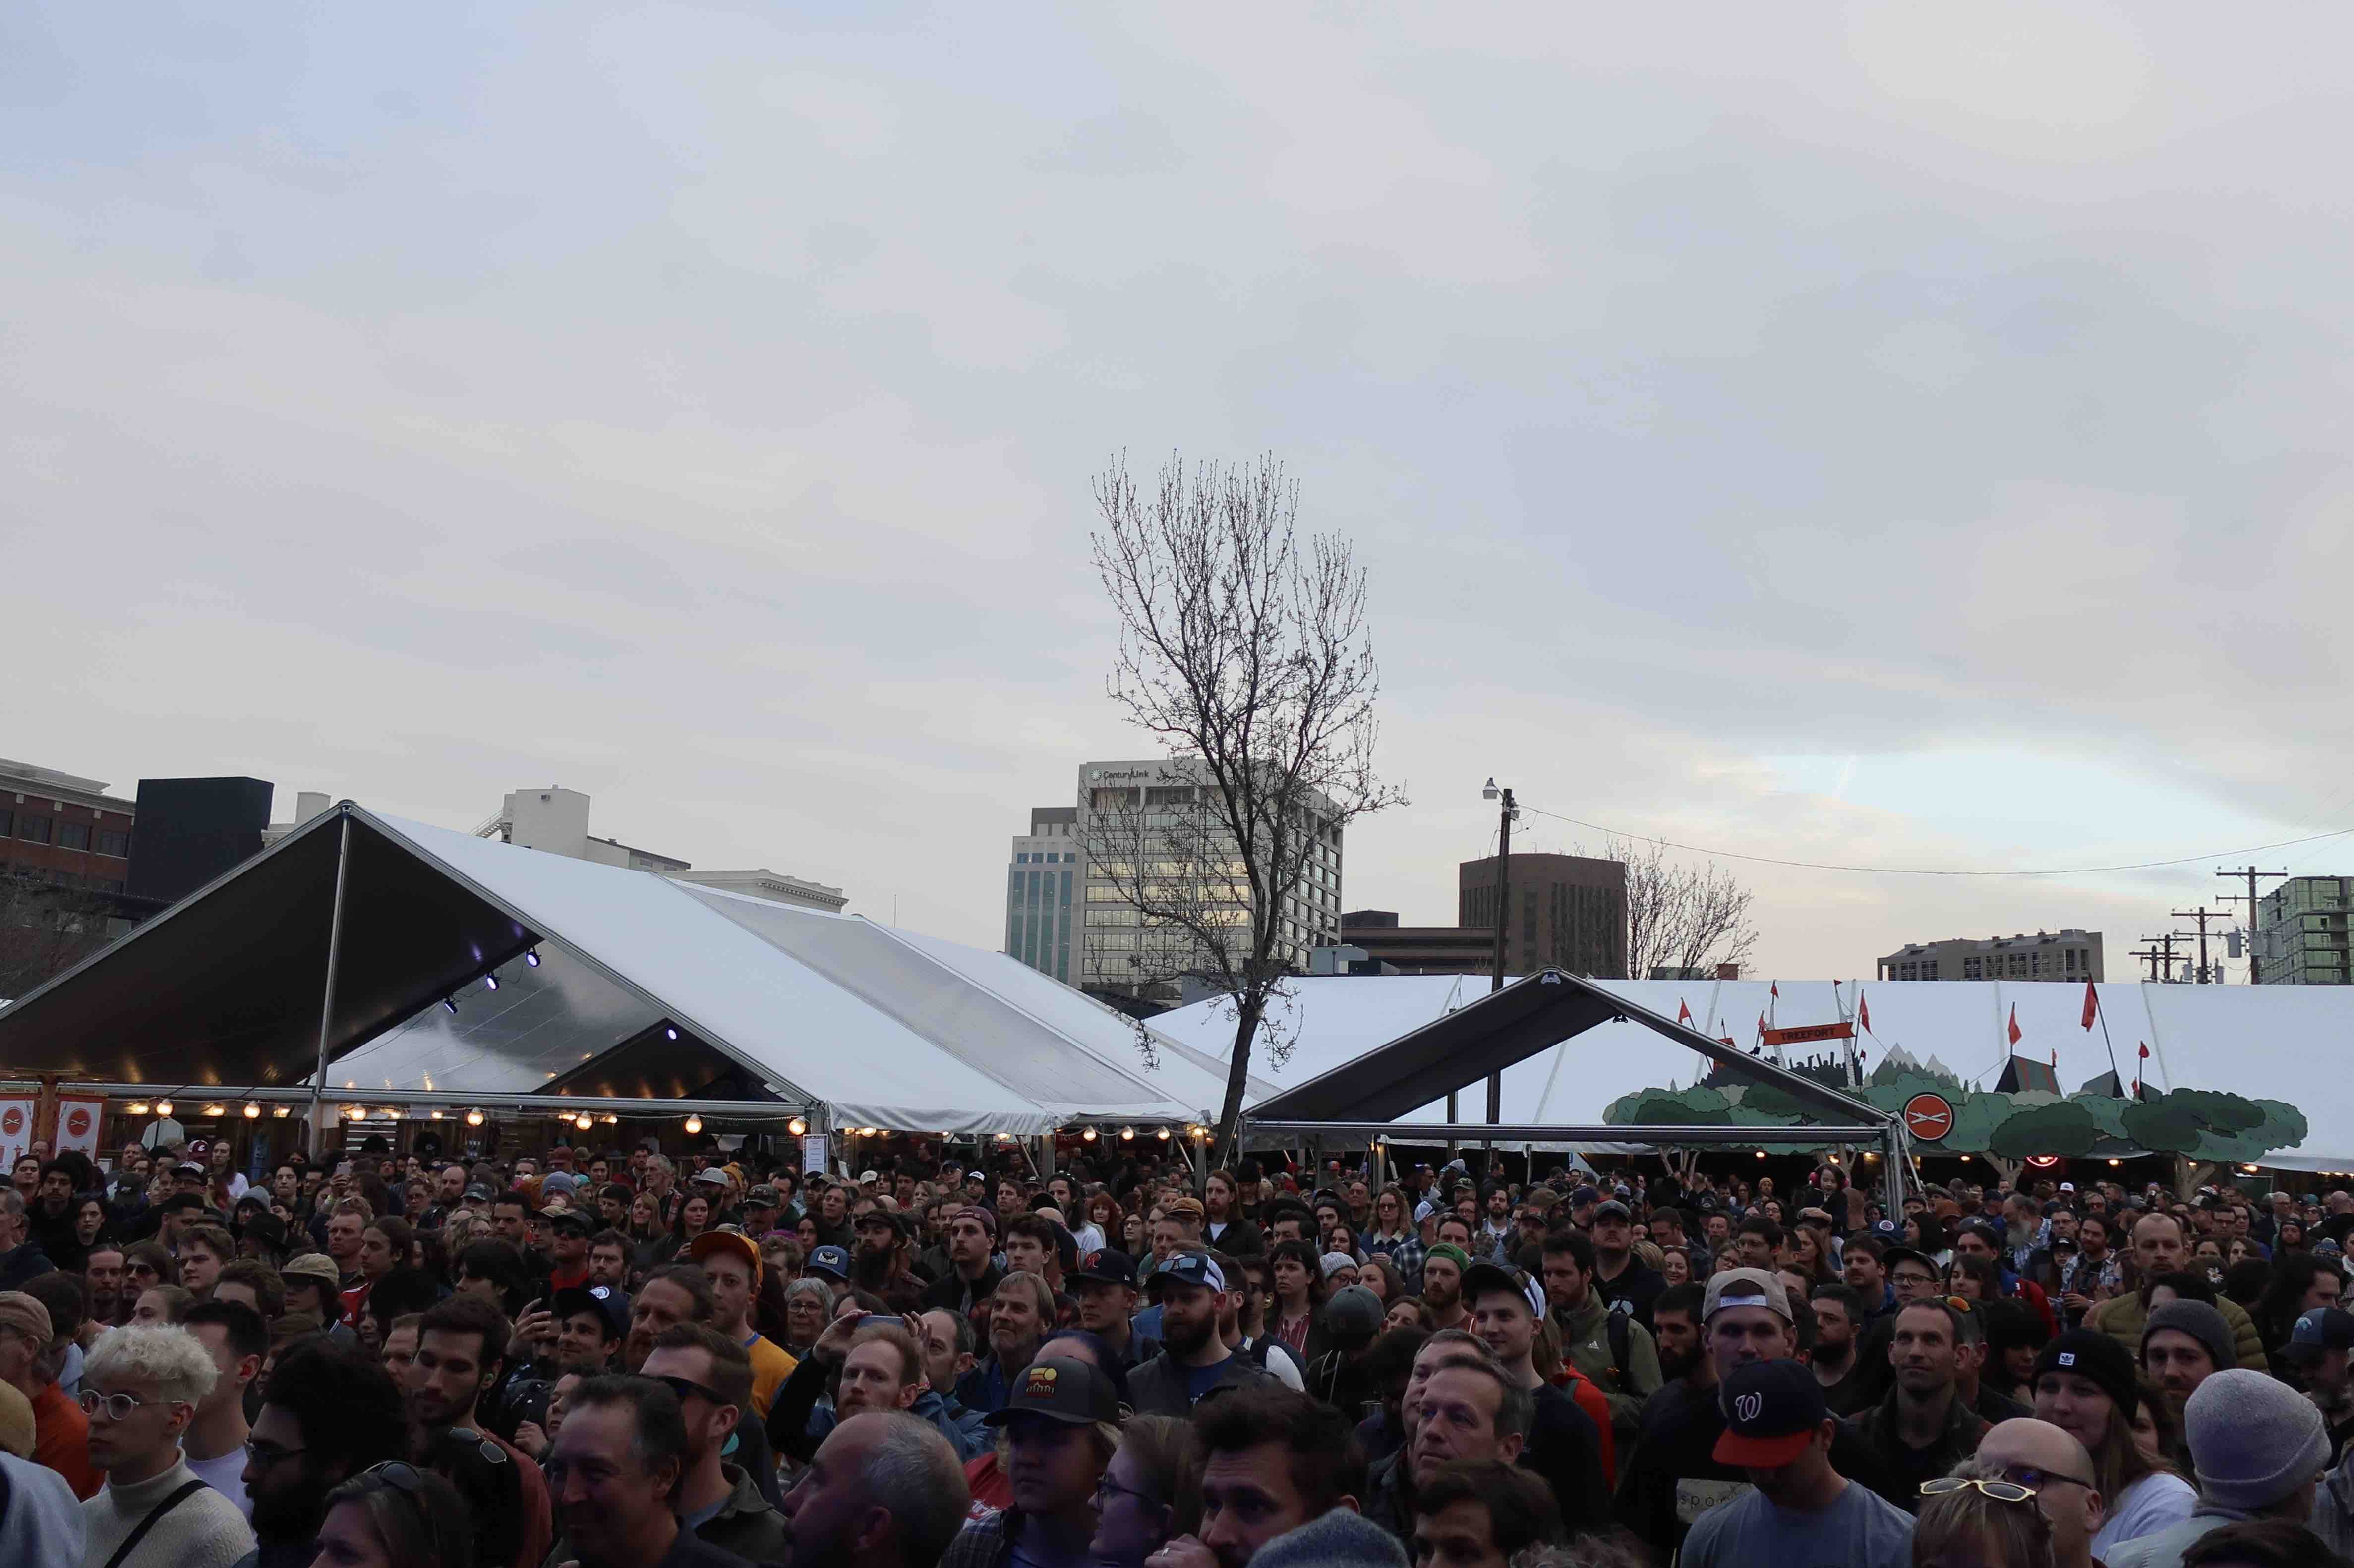 The crowd at the main stage at the 2019 Treefort Music Fest.